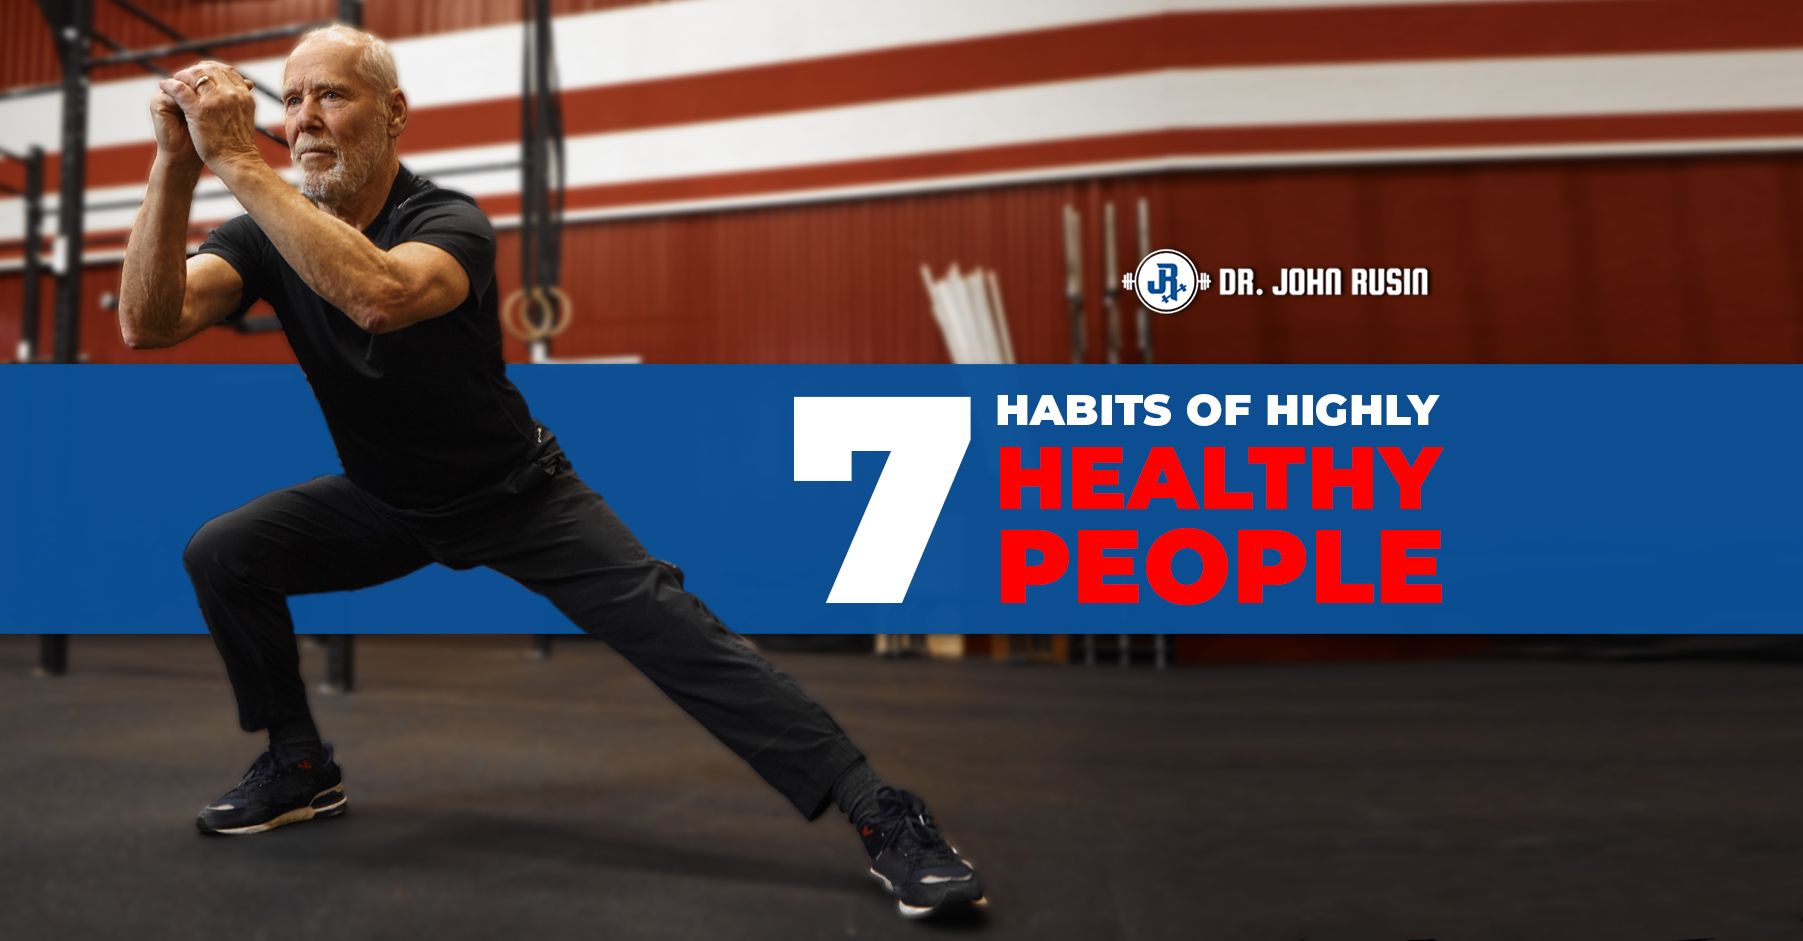 7 habits of highly healthy people